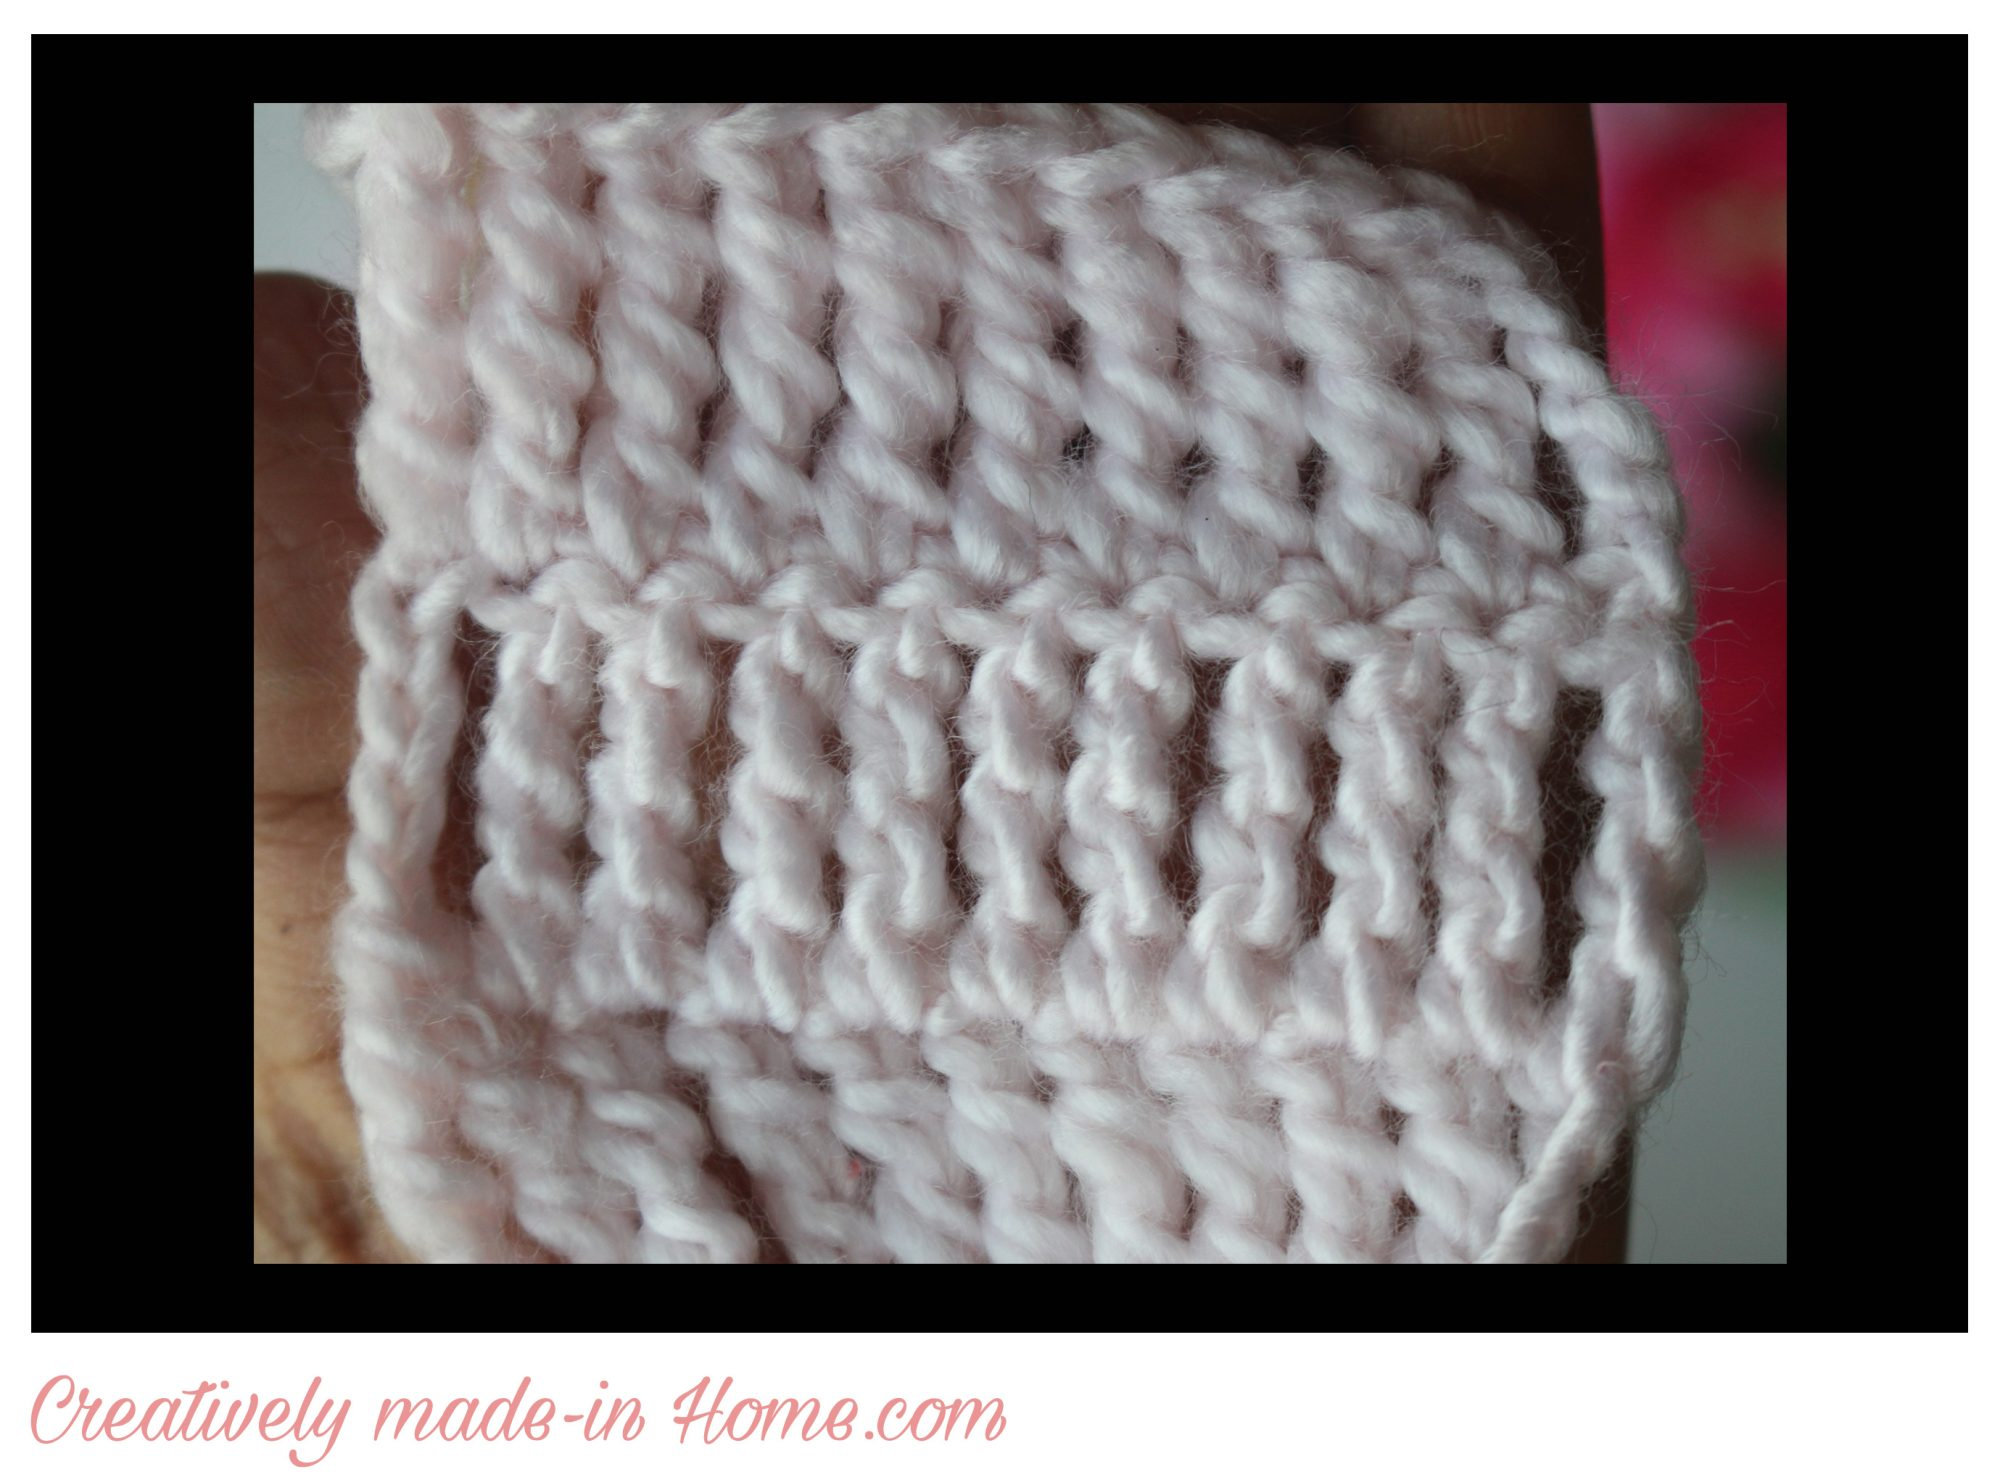 Double Triple Crochet Stitch | How to make Double Triple ...